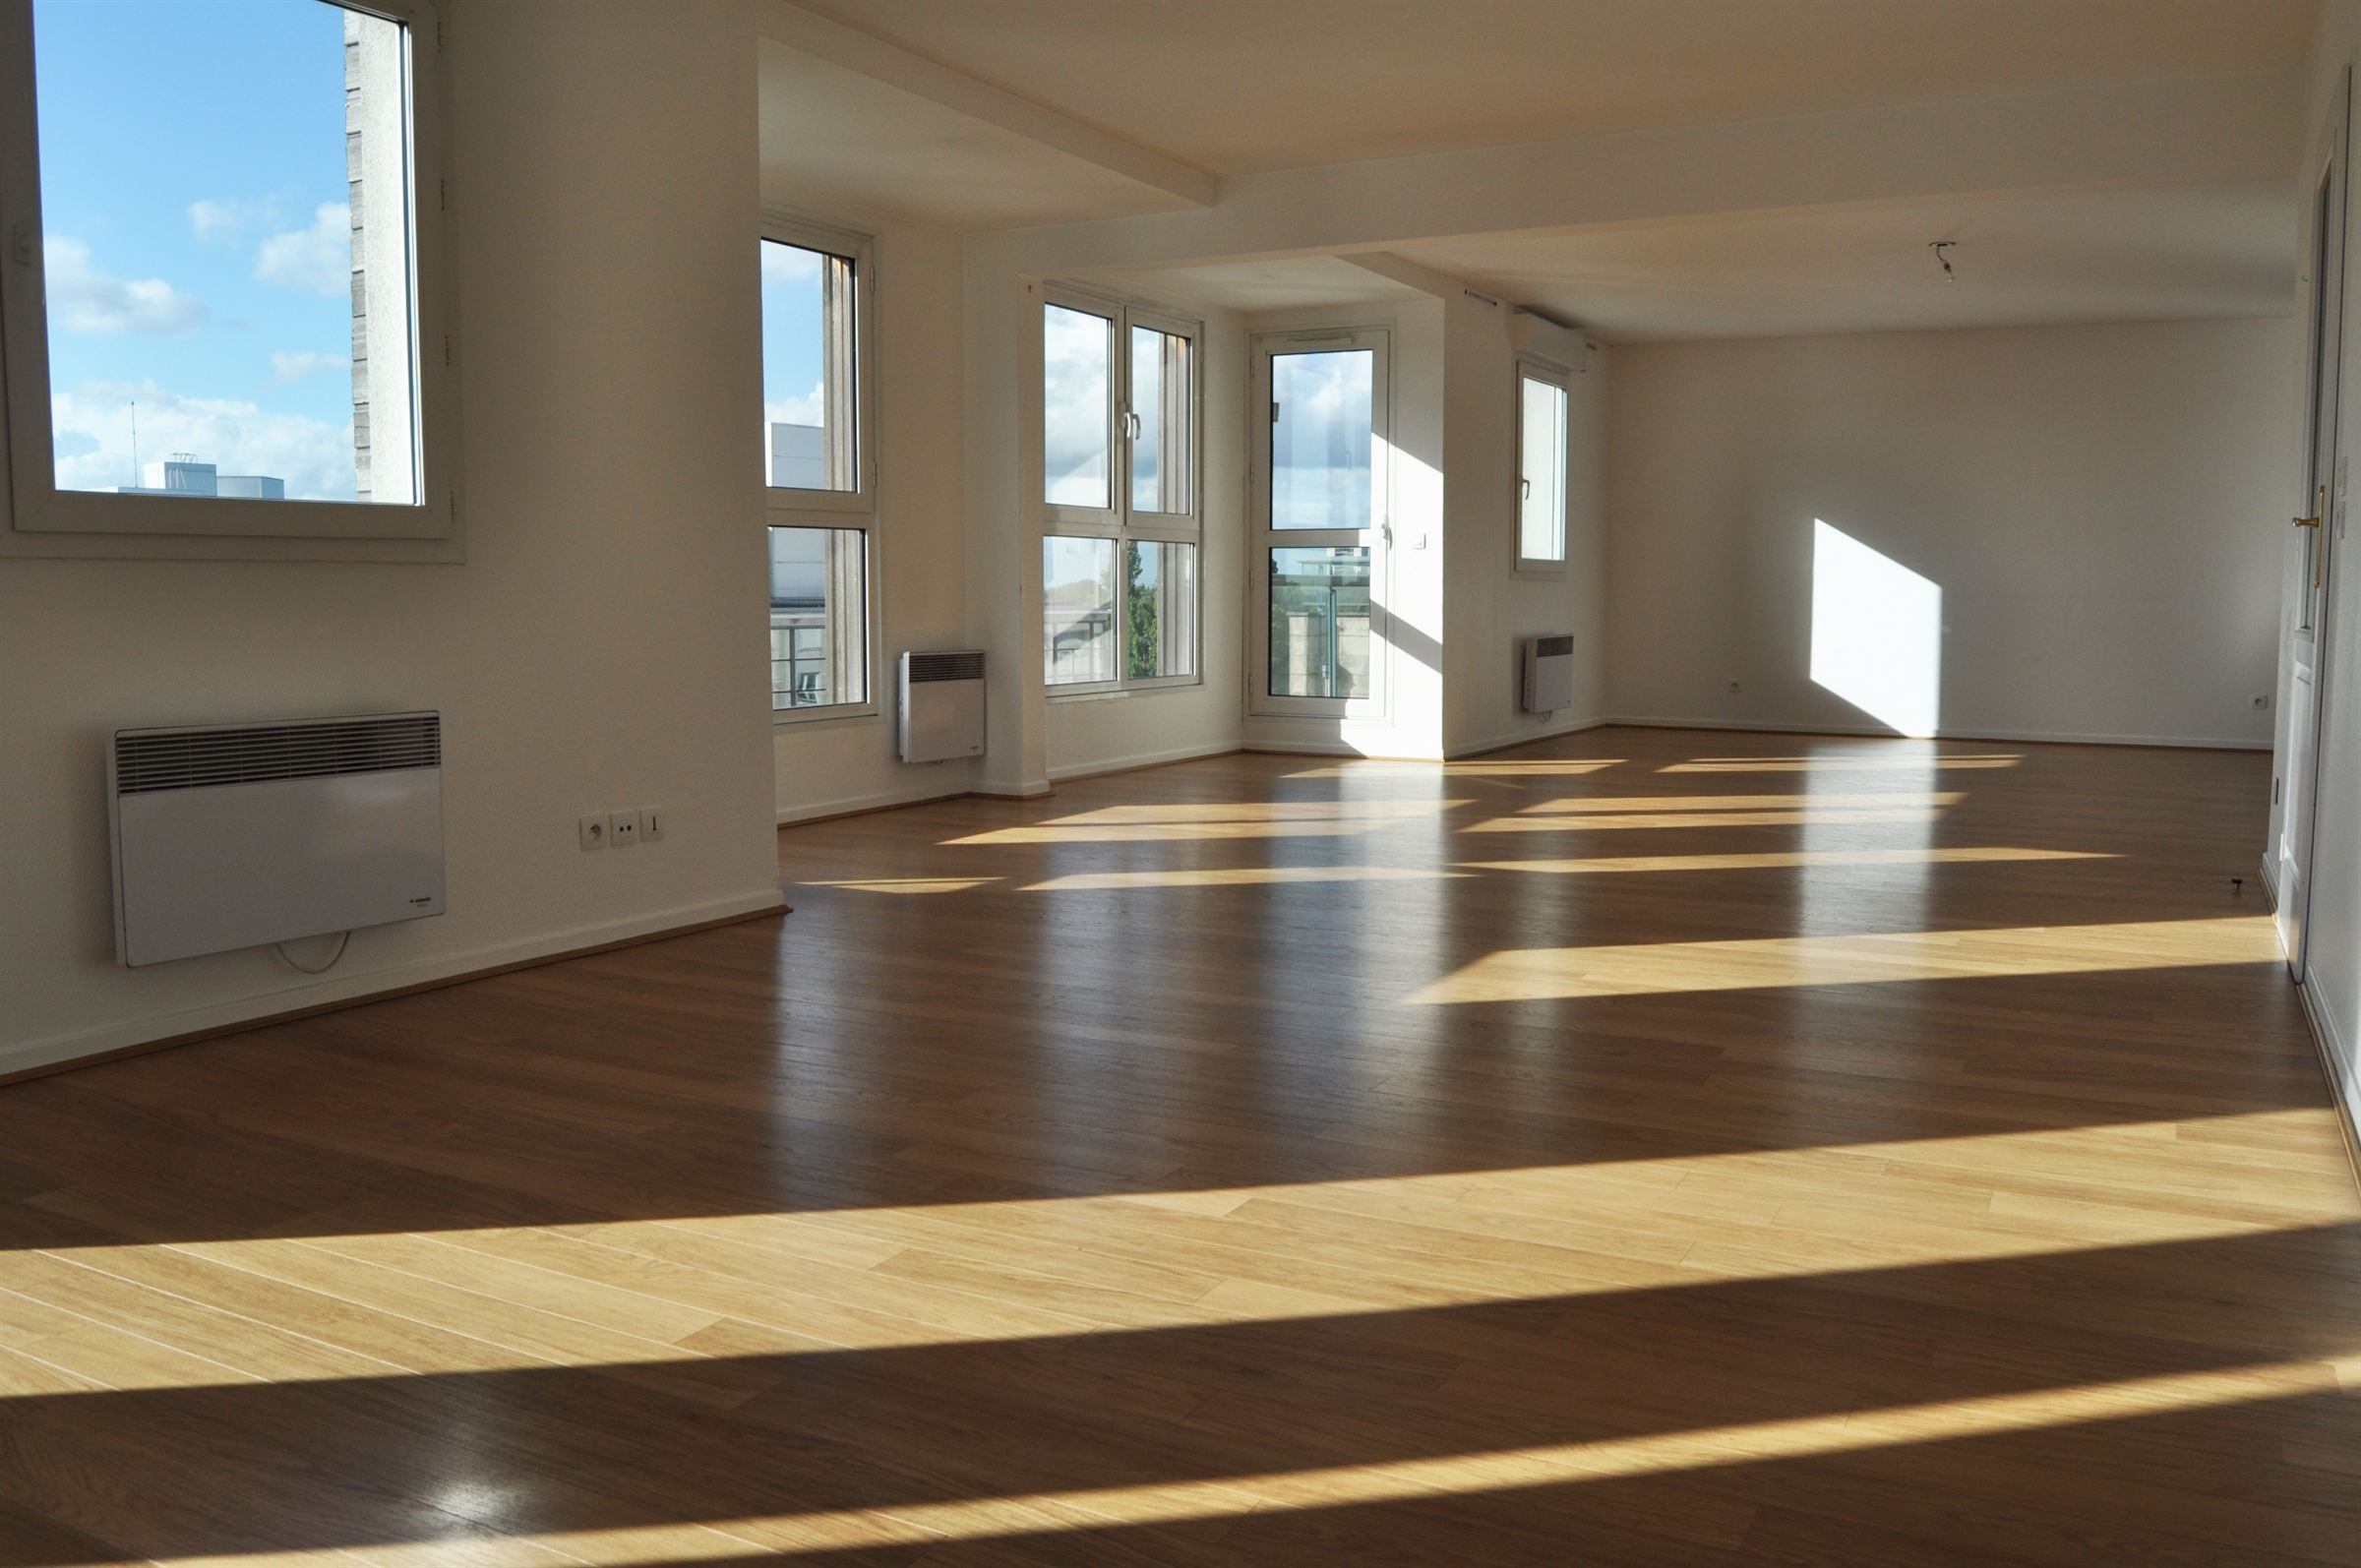 Property For Sale at LILLE, stunning city views, Apartment of 136 m2 hab., 3 bedrooms